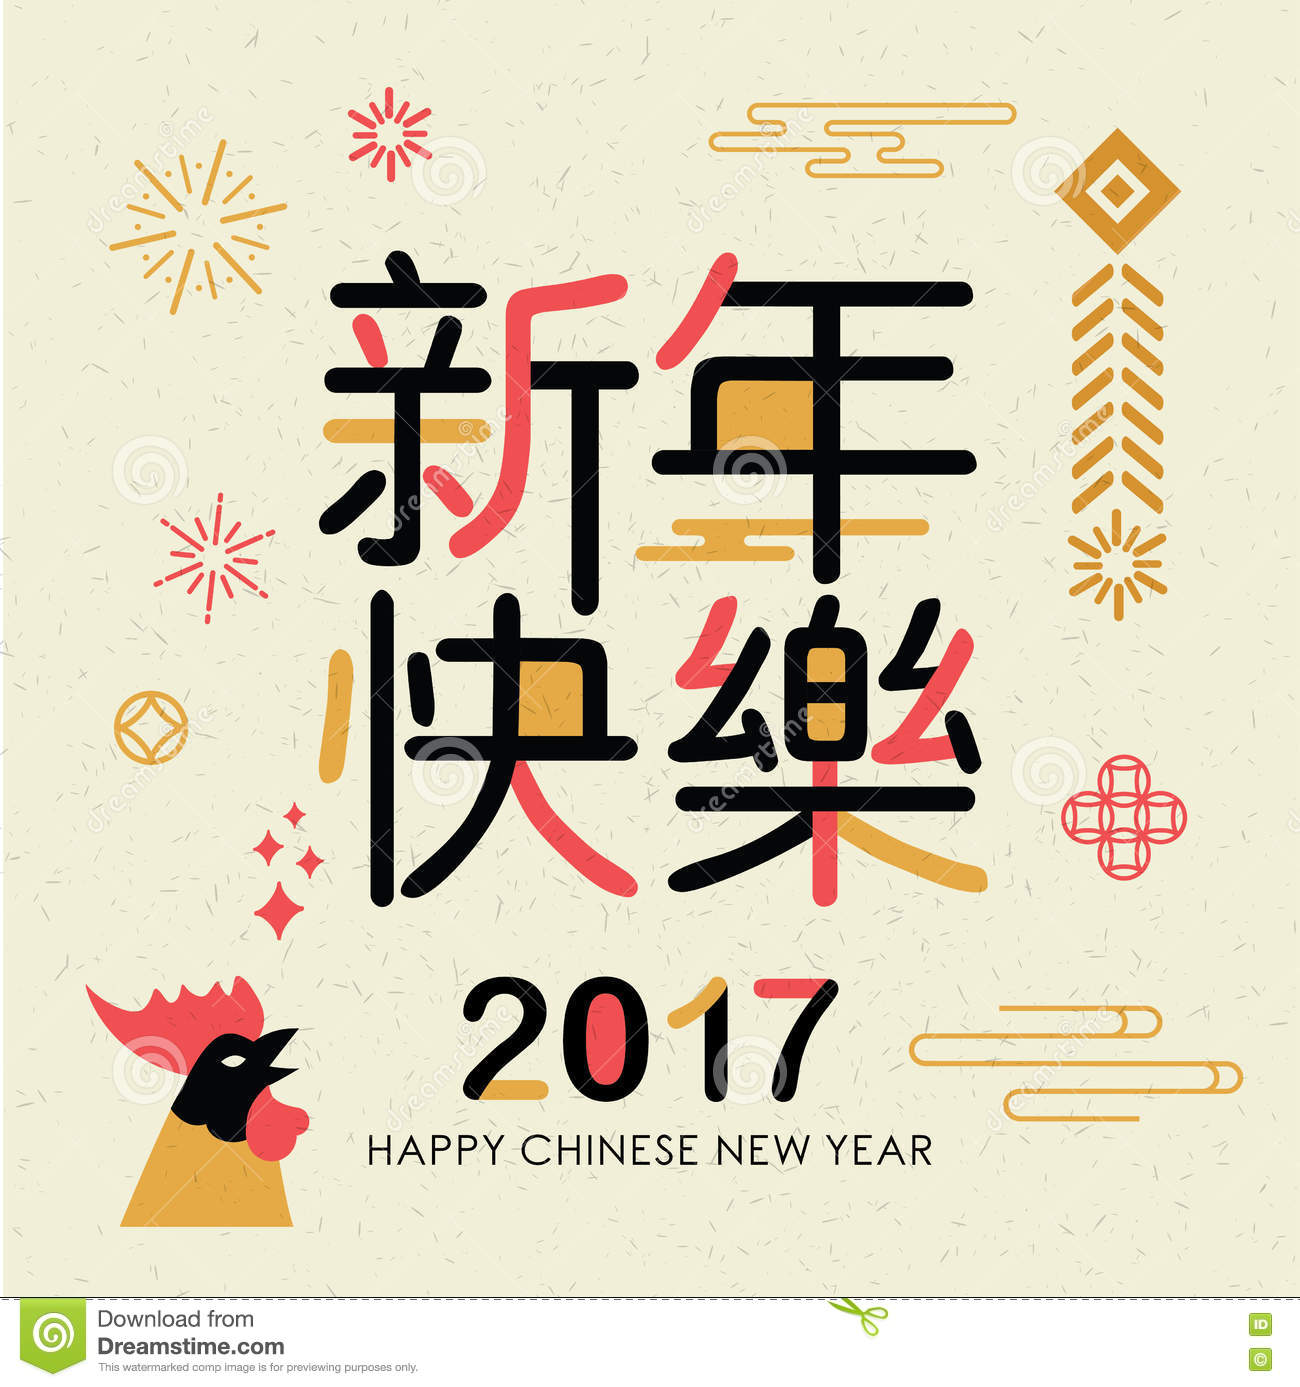 Happy Chinese New Year 2017 Stock Vector Illustration Of